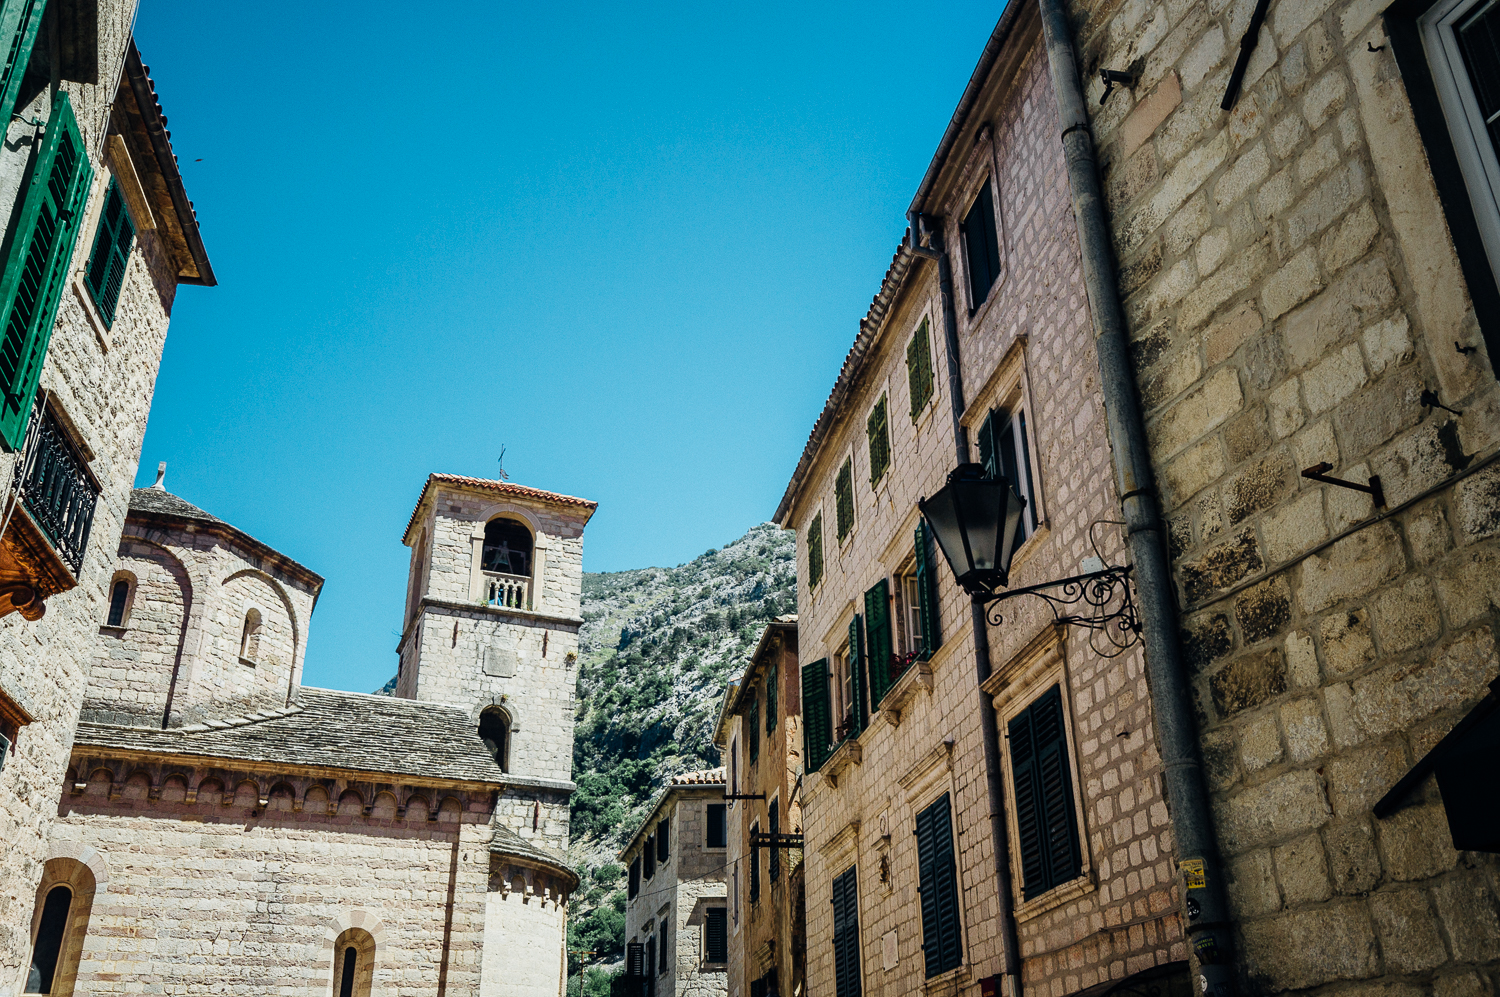 Beautiful, cohesive architecture in Kotor